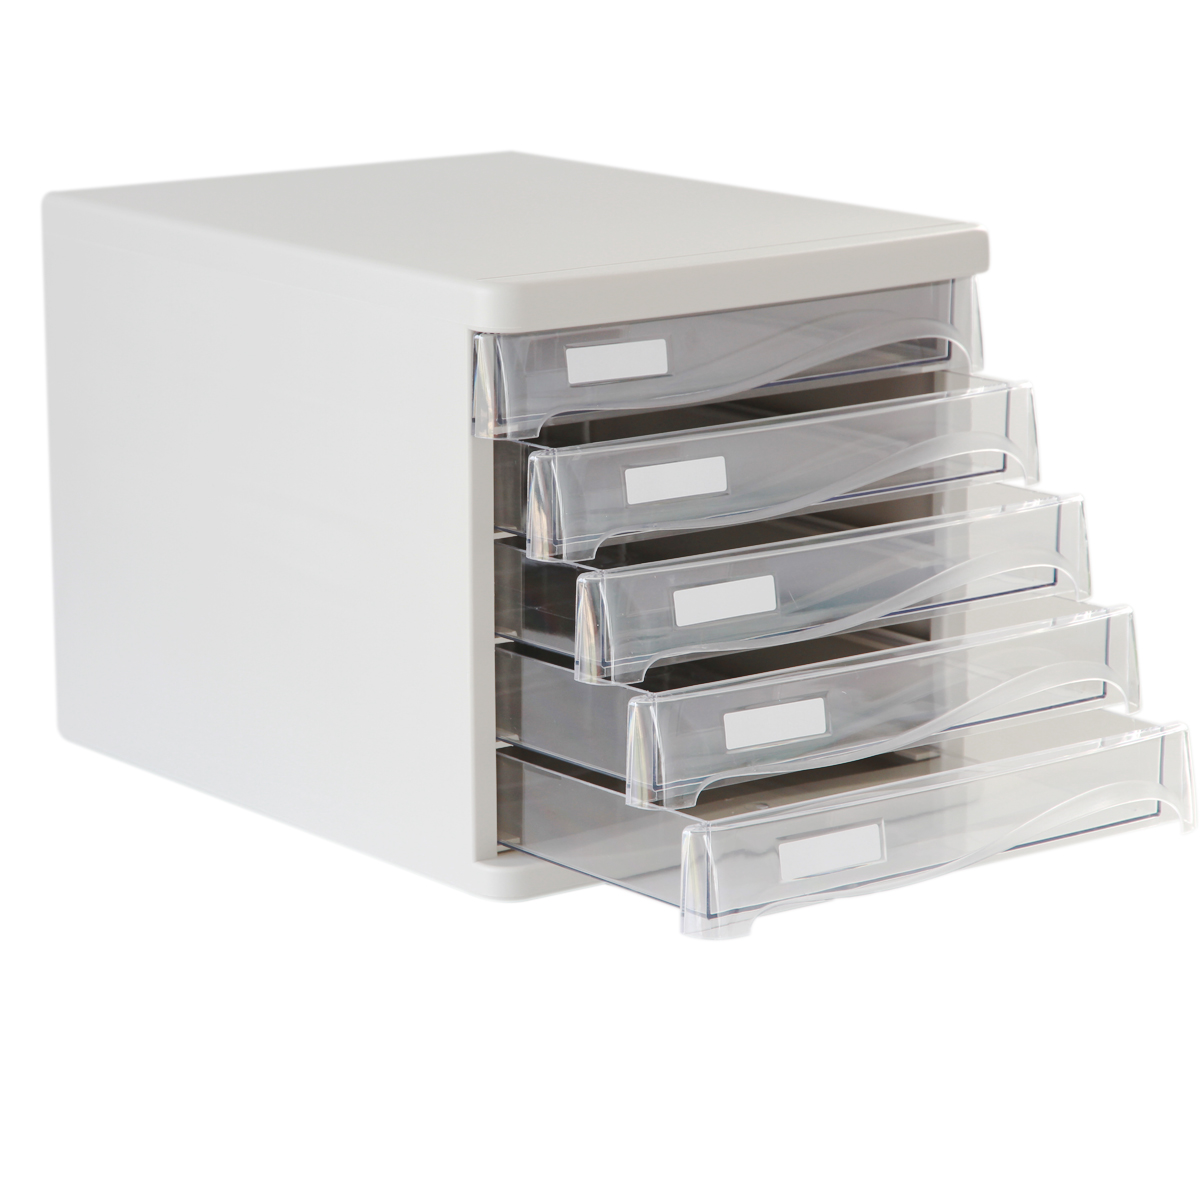 File Cabinet Office Five Transparent Plastic Drawer Storage Desktop 4 Paper  Storage Products In Home Office Storage From Home U0026 Garden On  Aliexpress.com ...